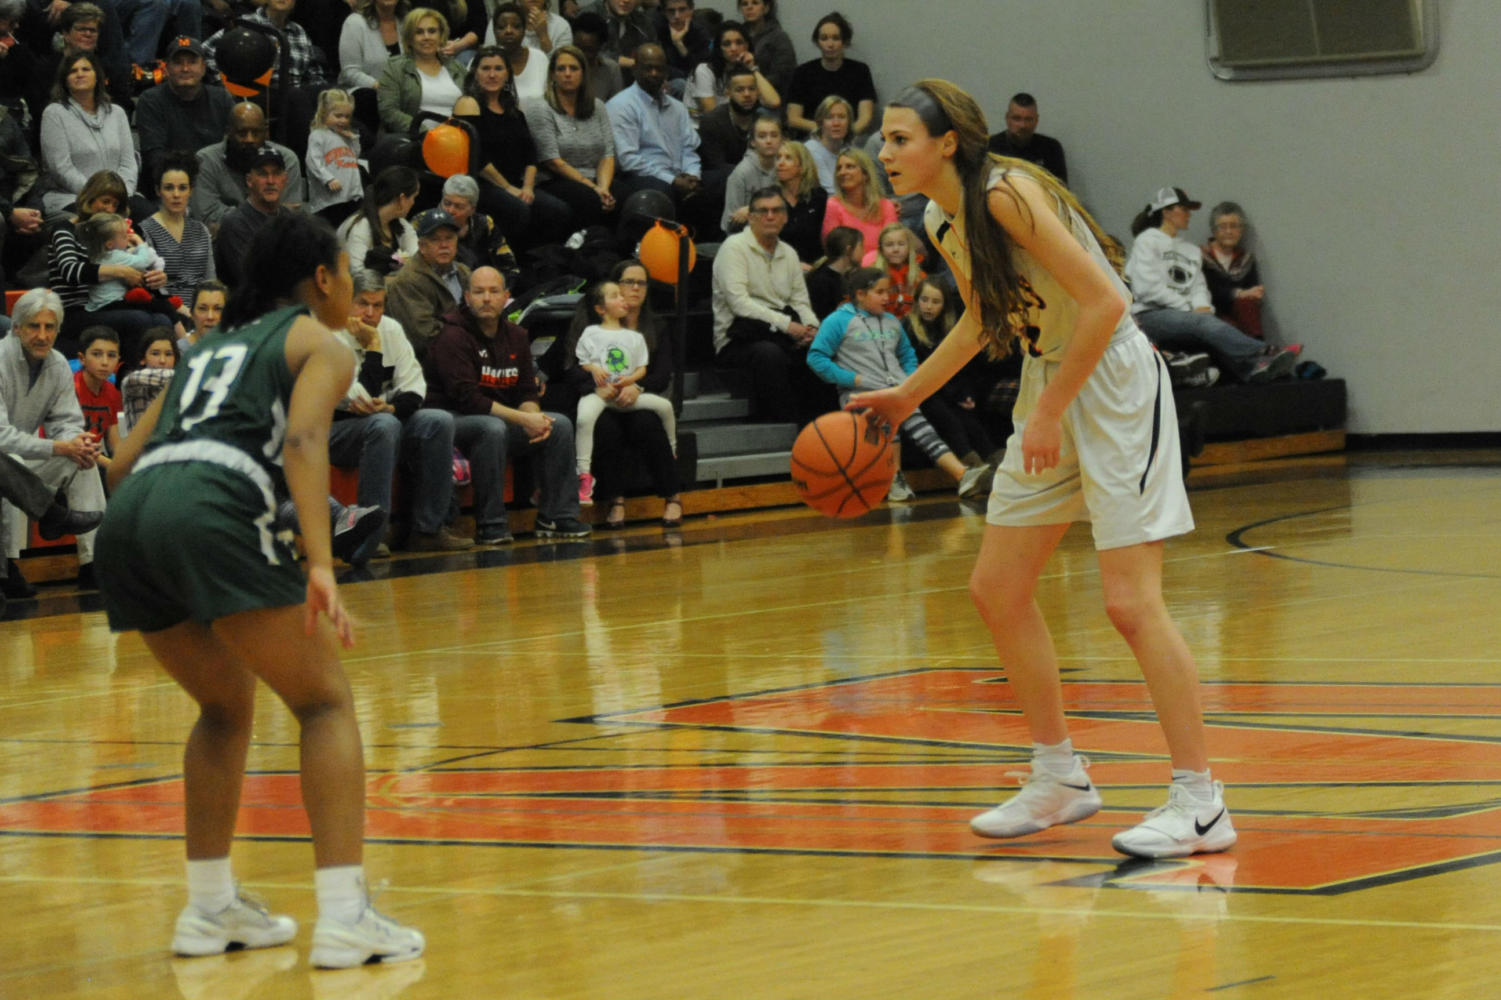 MHS player Saylor Poffenbarger dribbles the ball down the court.